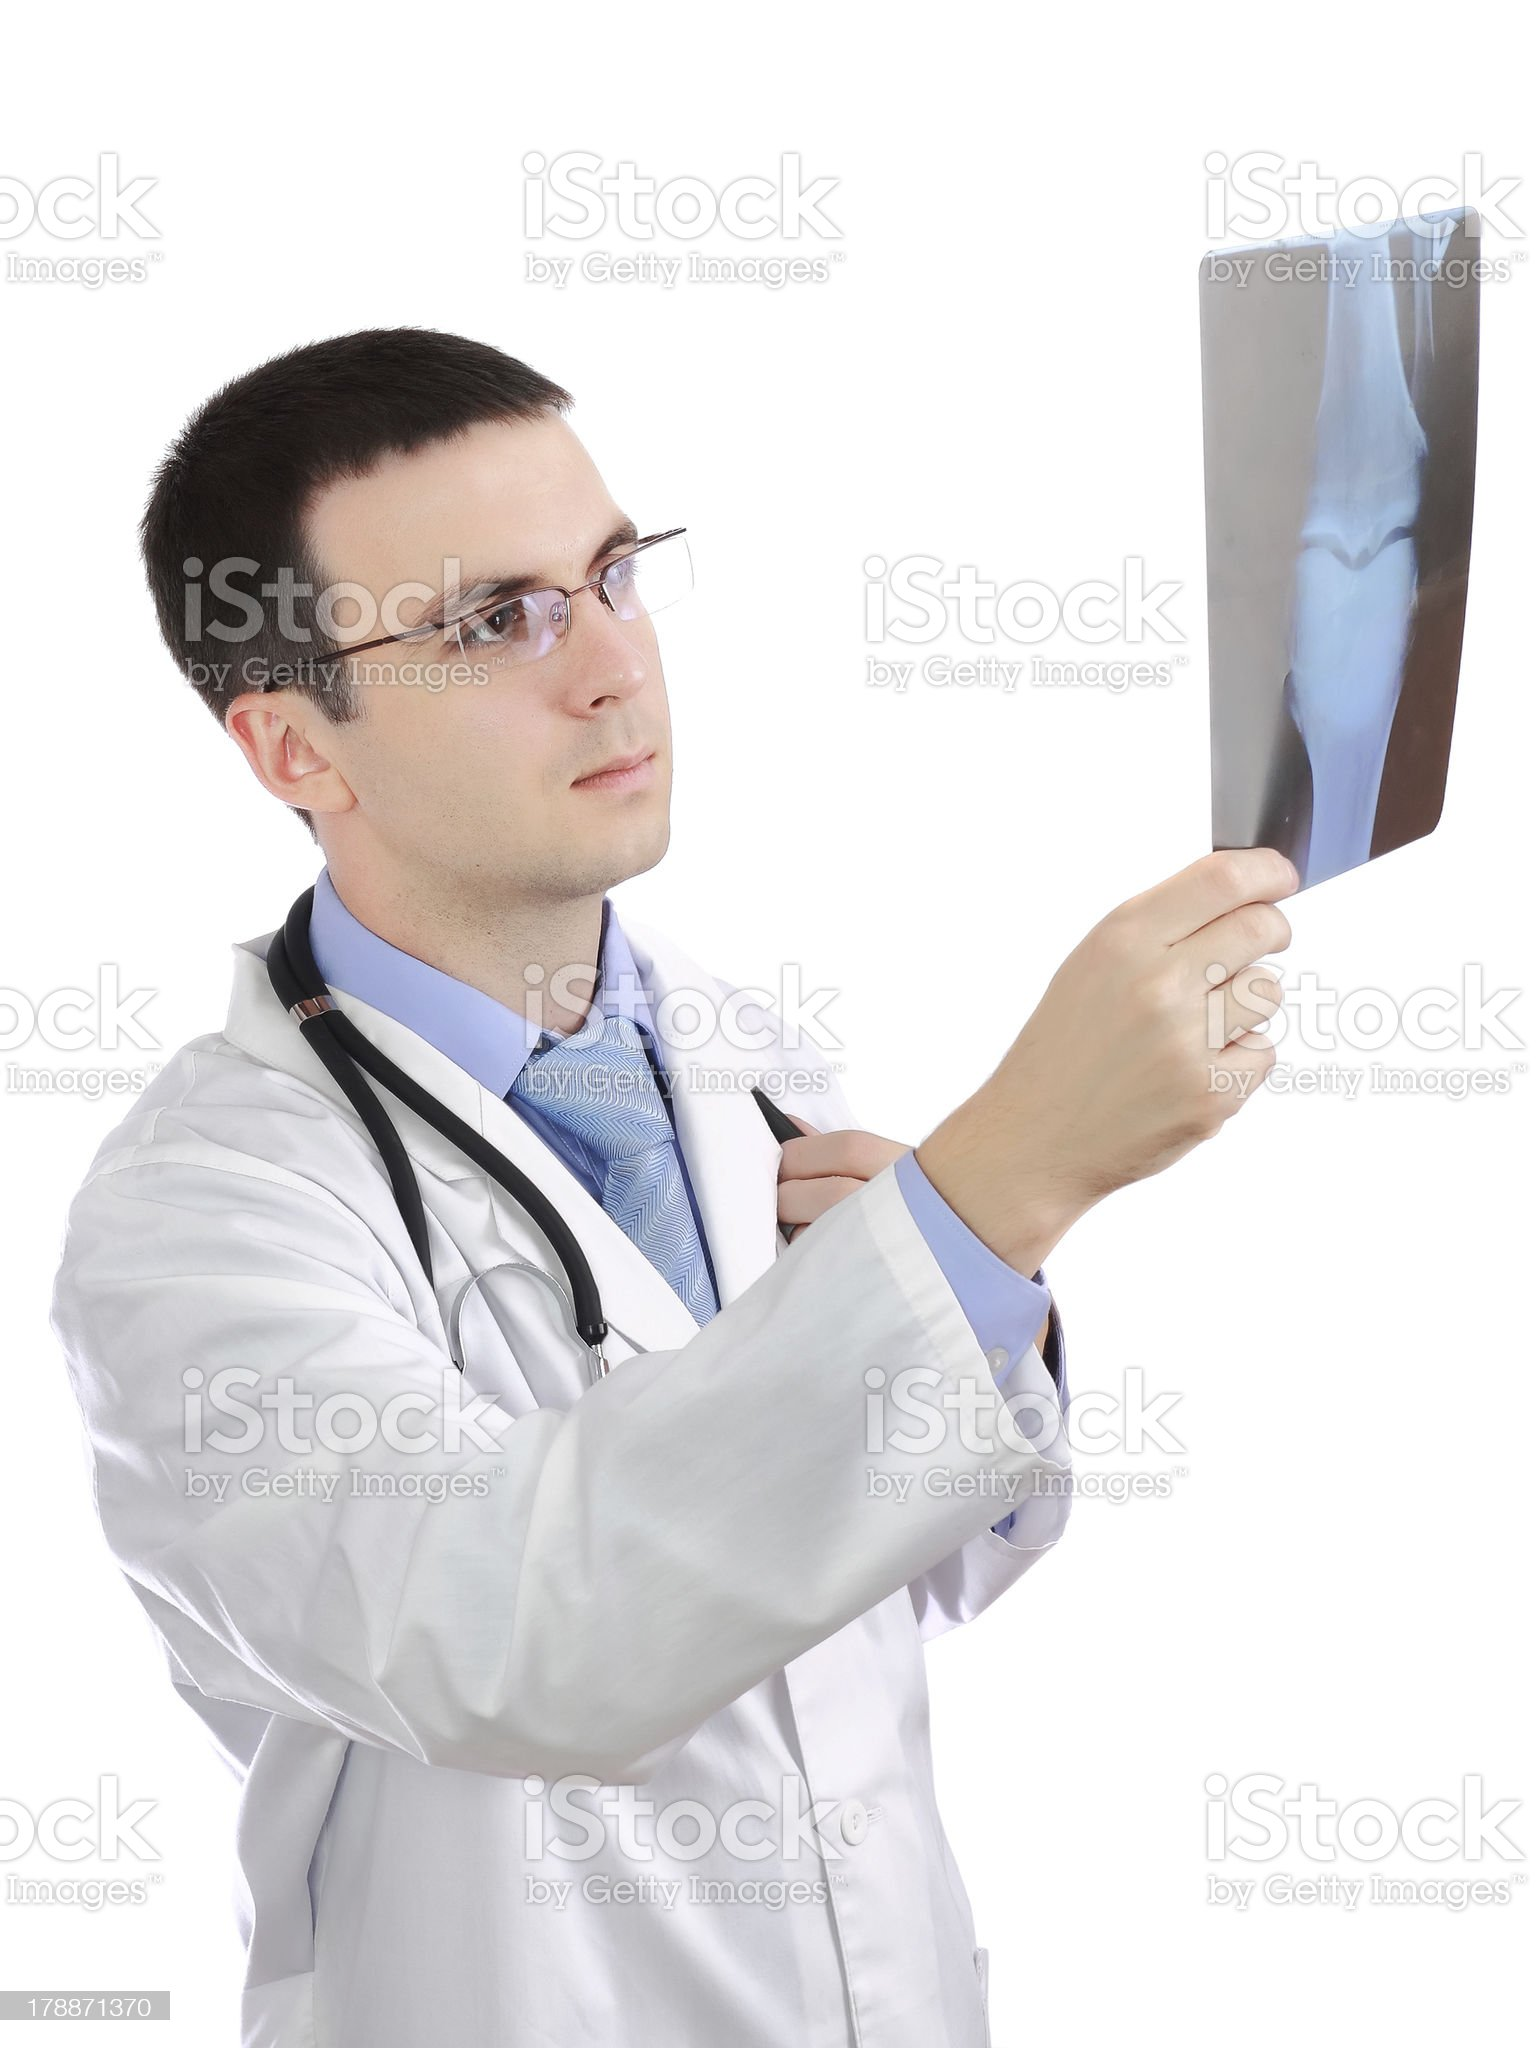 Portrait of medical doctor with a x-ray image. royalty-free stock photo